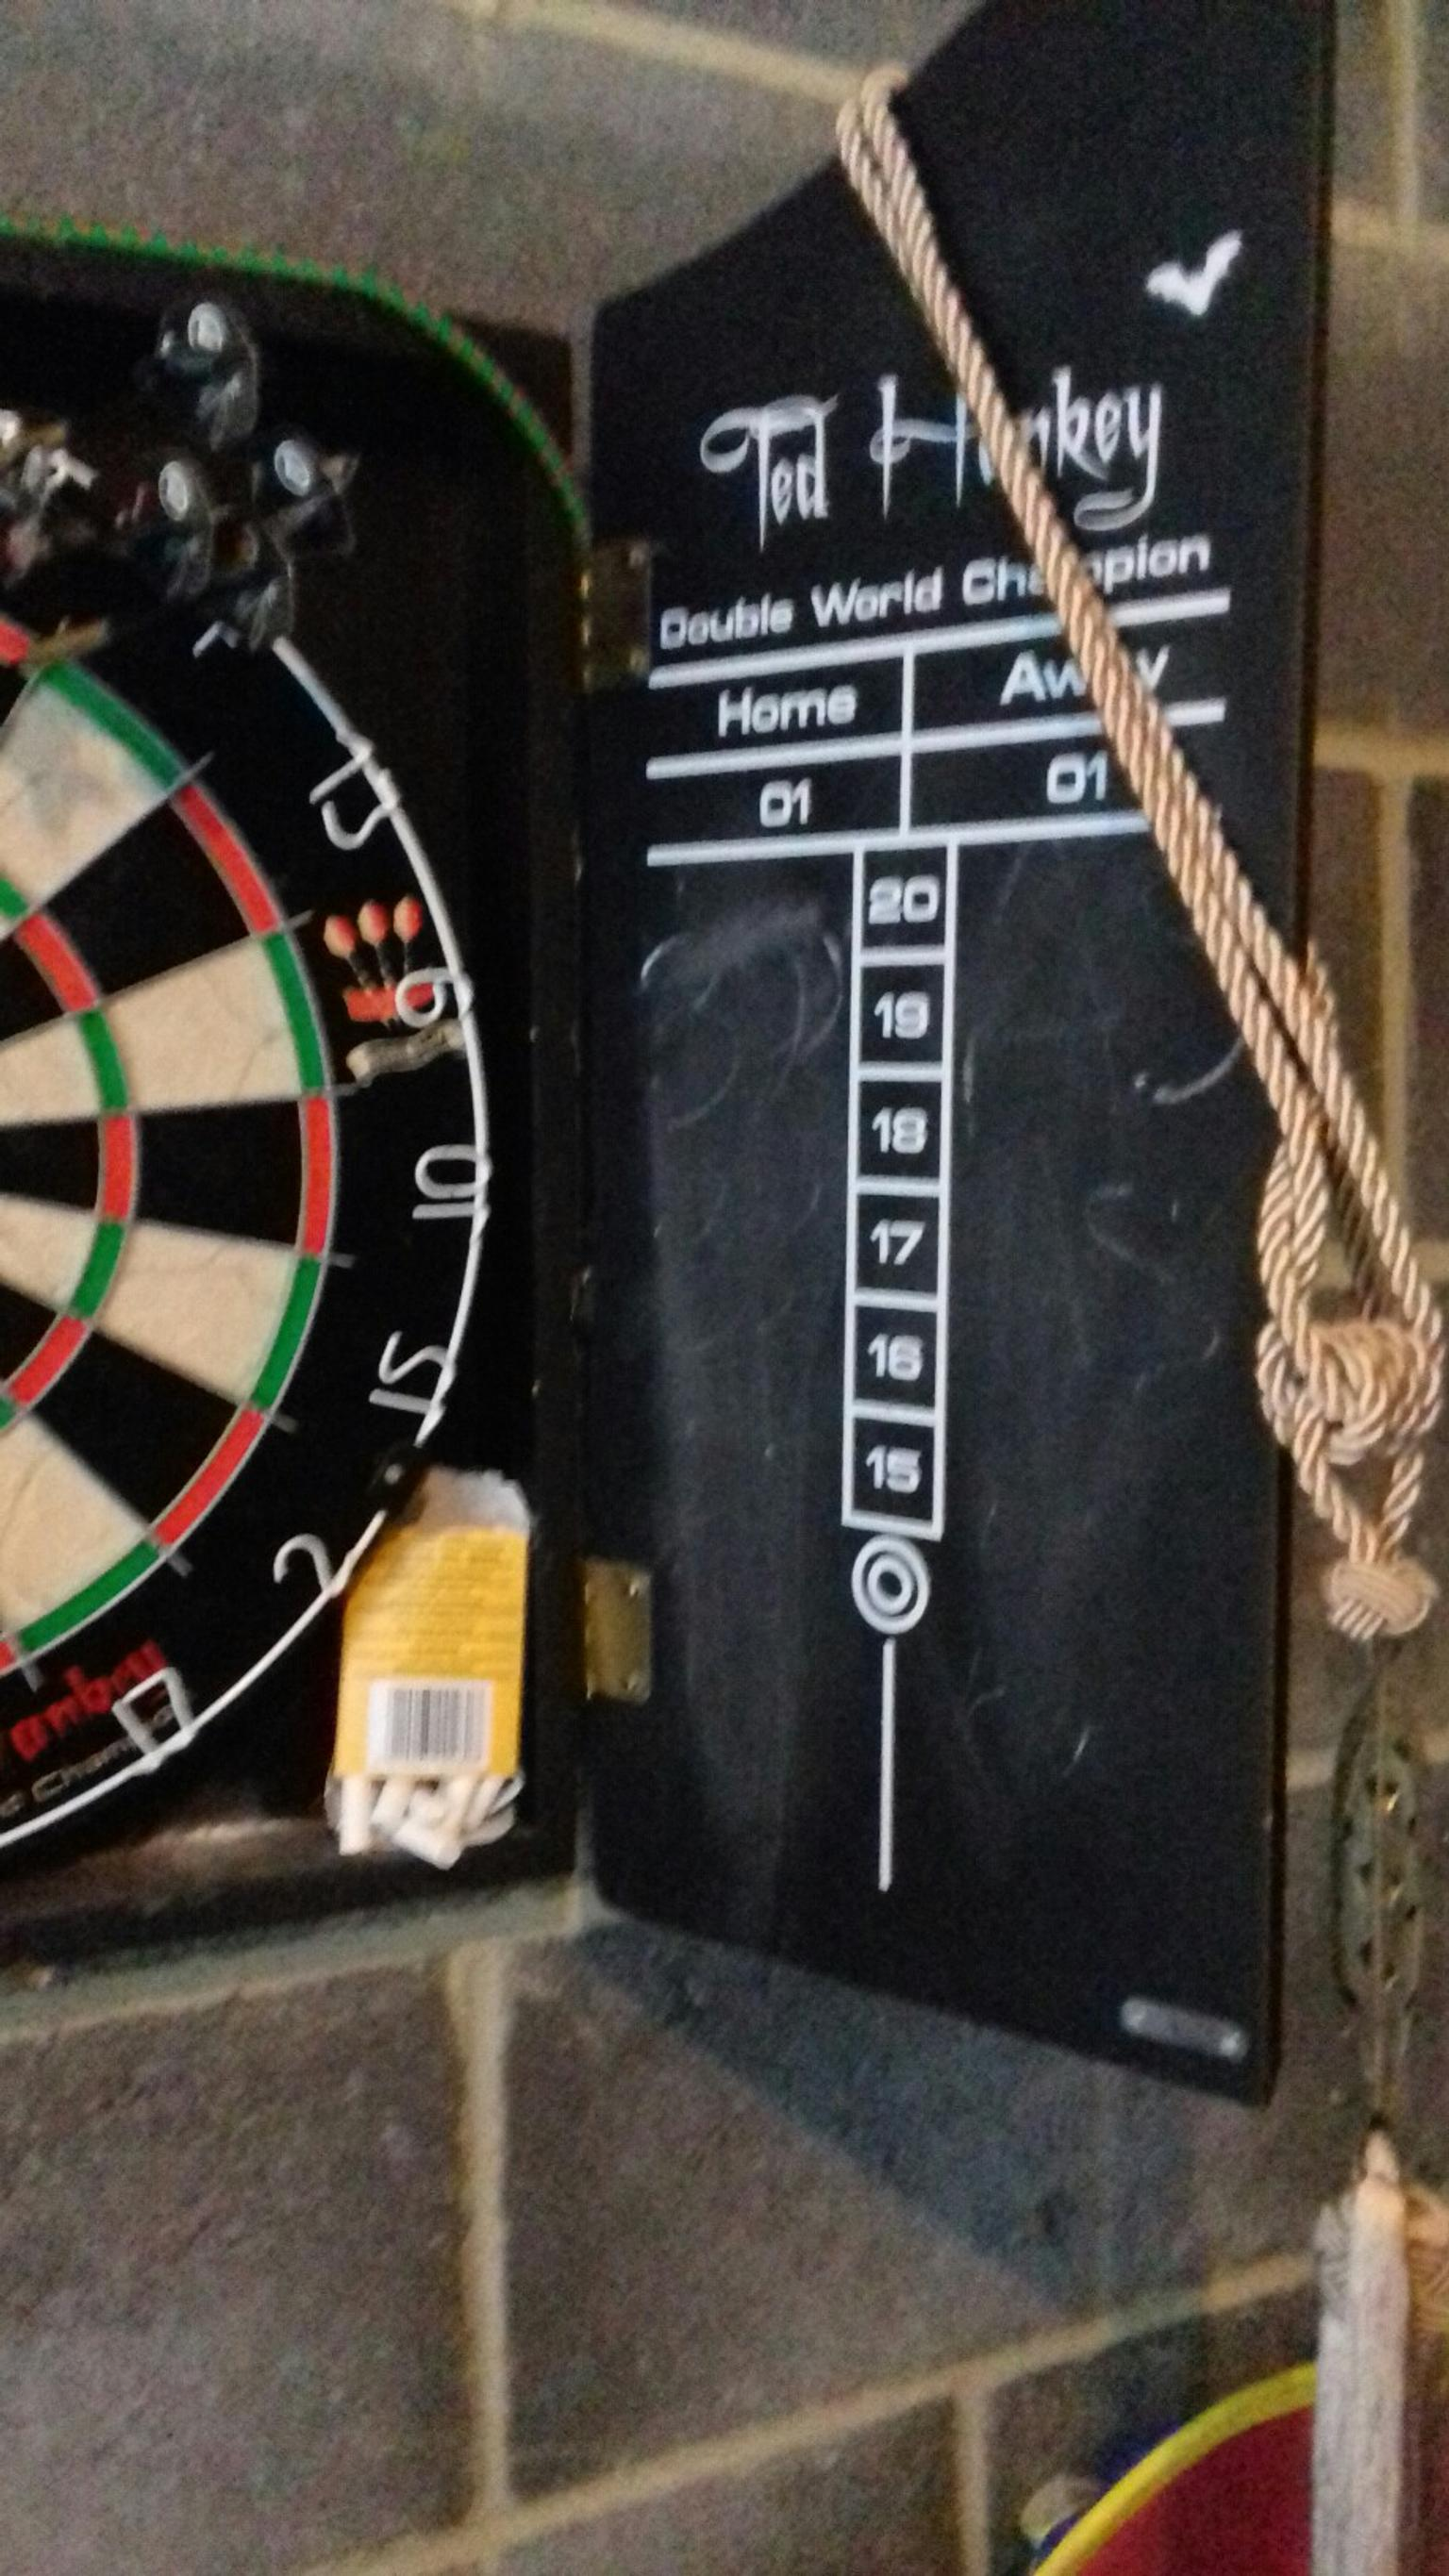 Ted Handy Dartboard